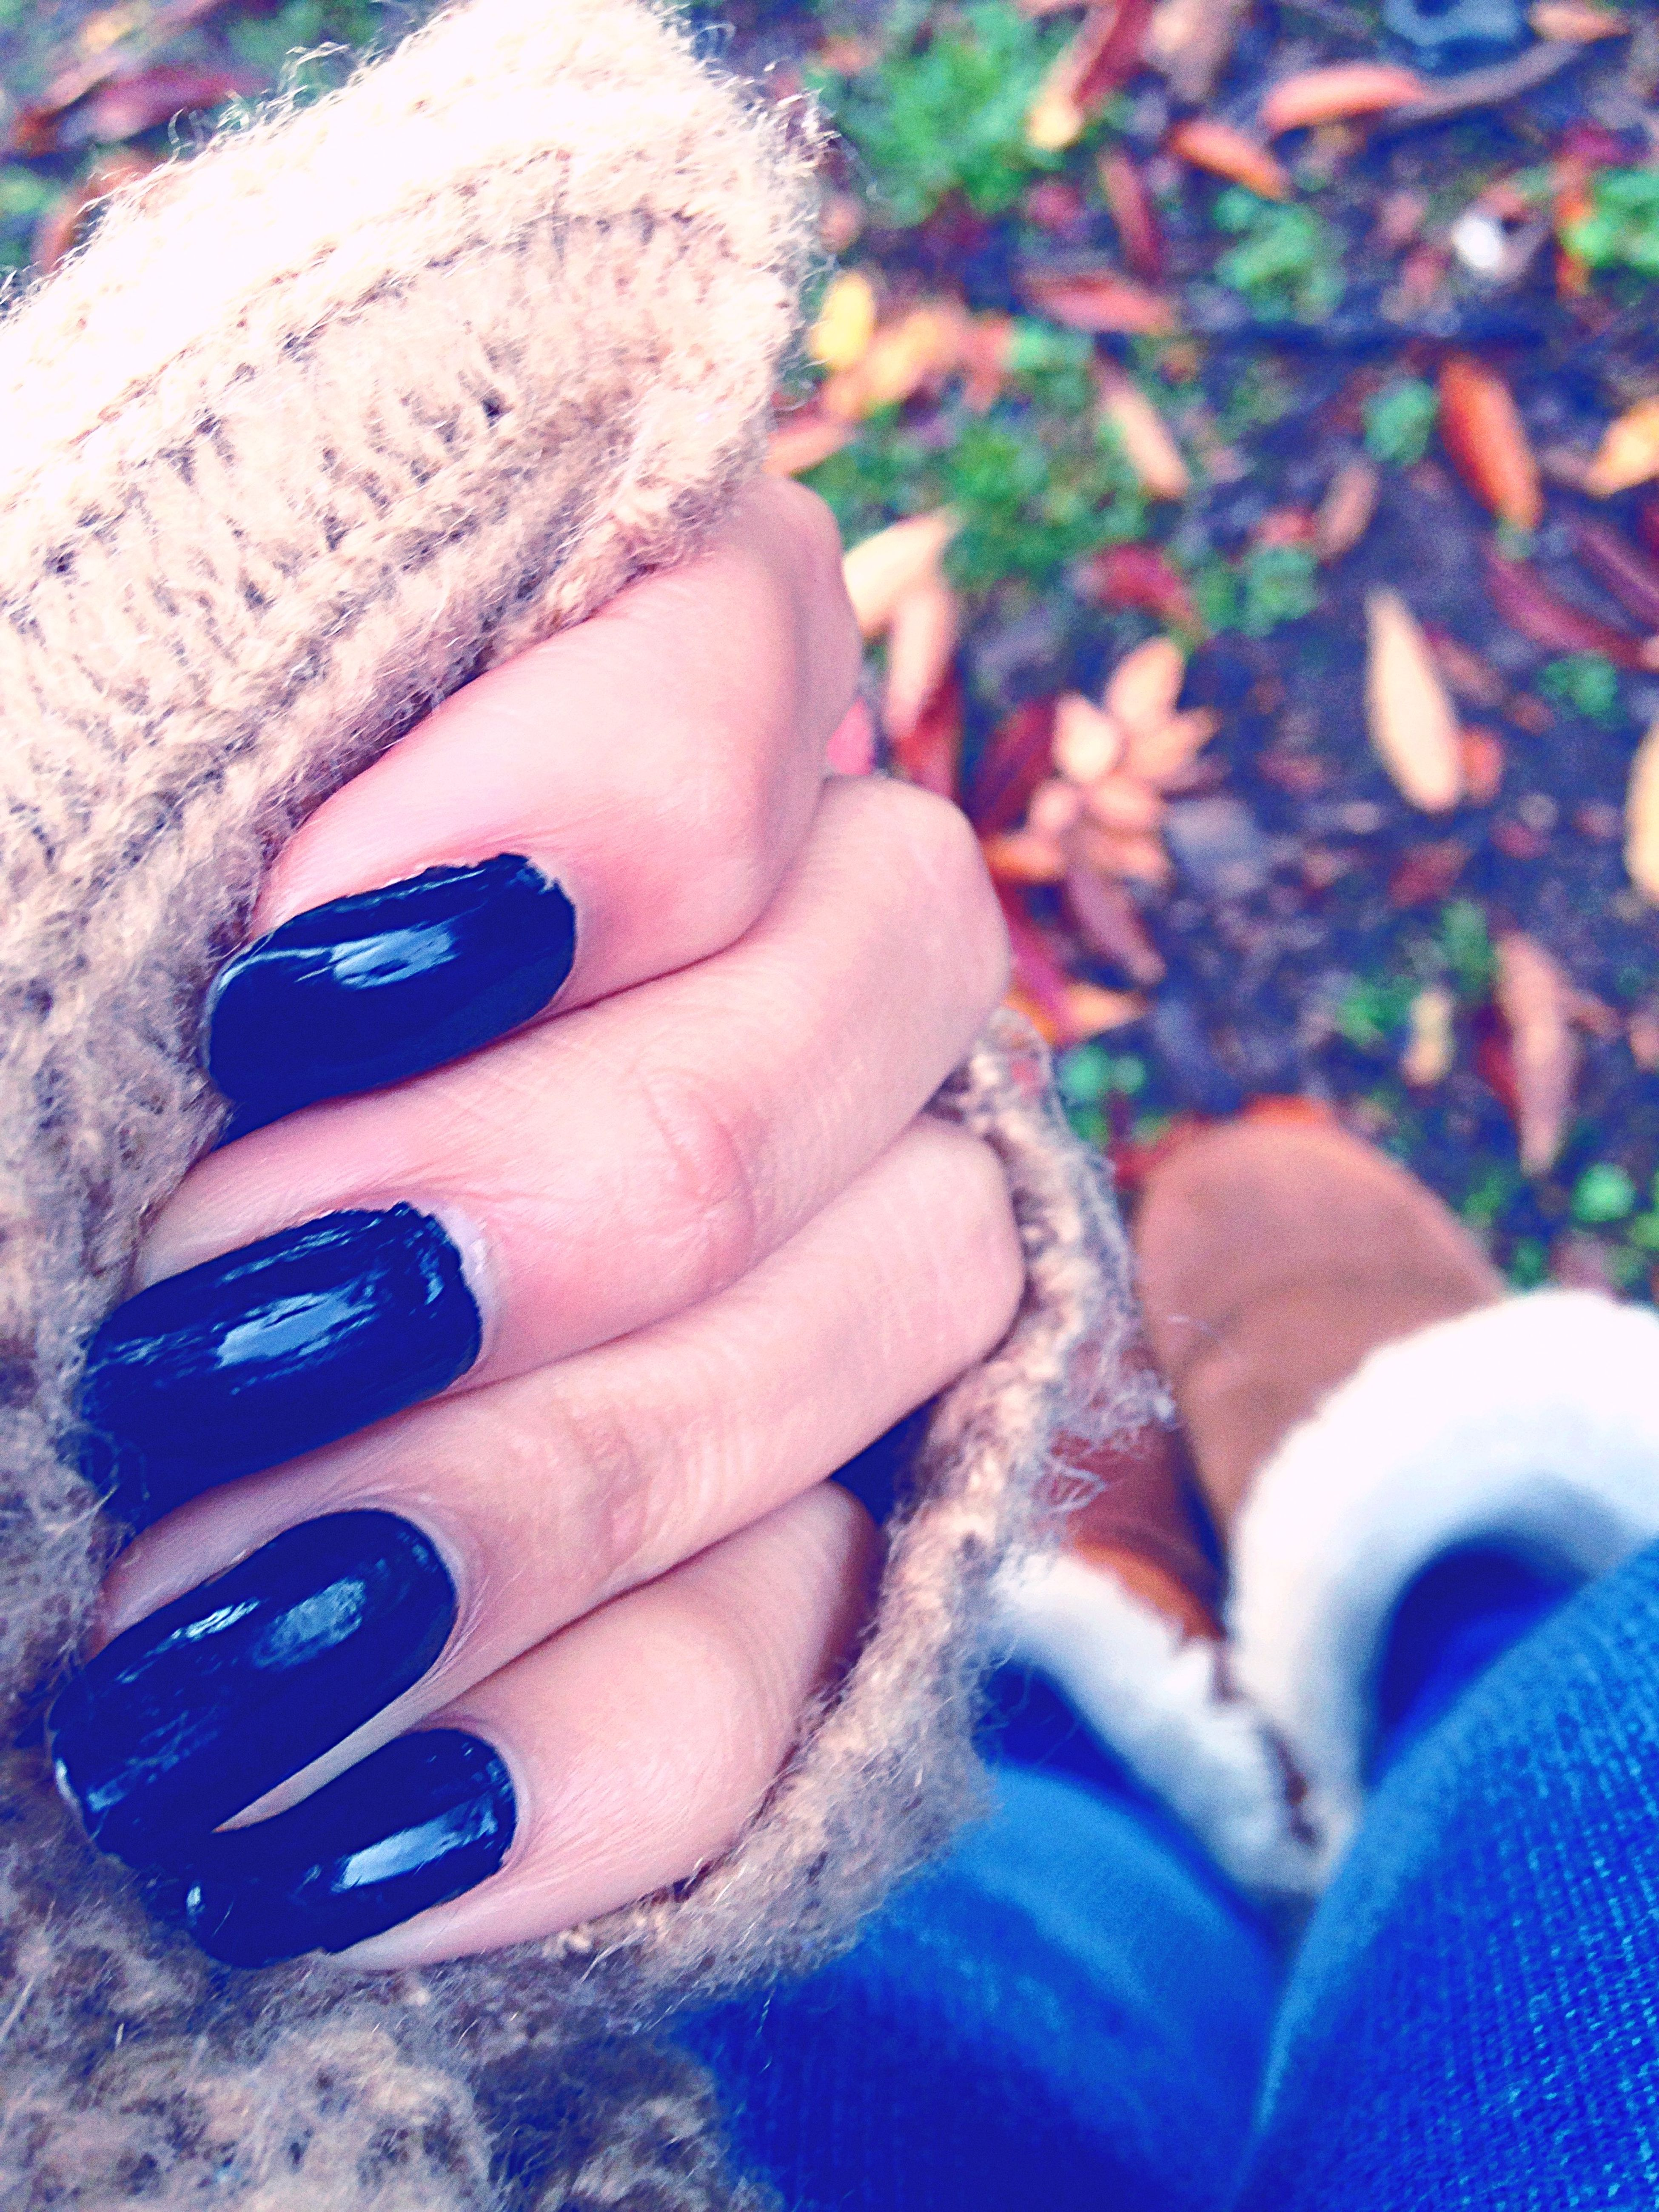 My nails are messed up but oh well:/..it's fall🍃🍂